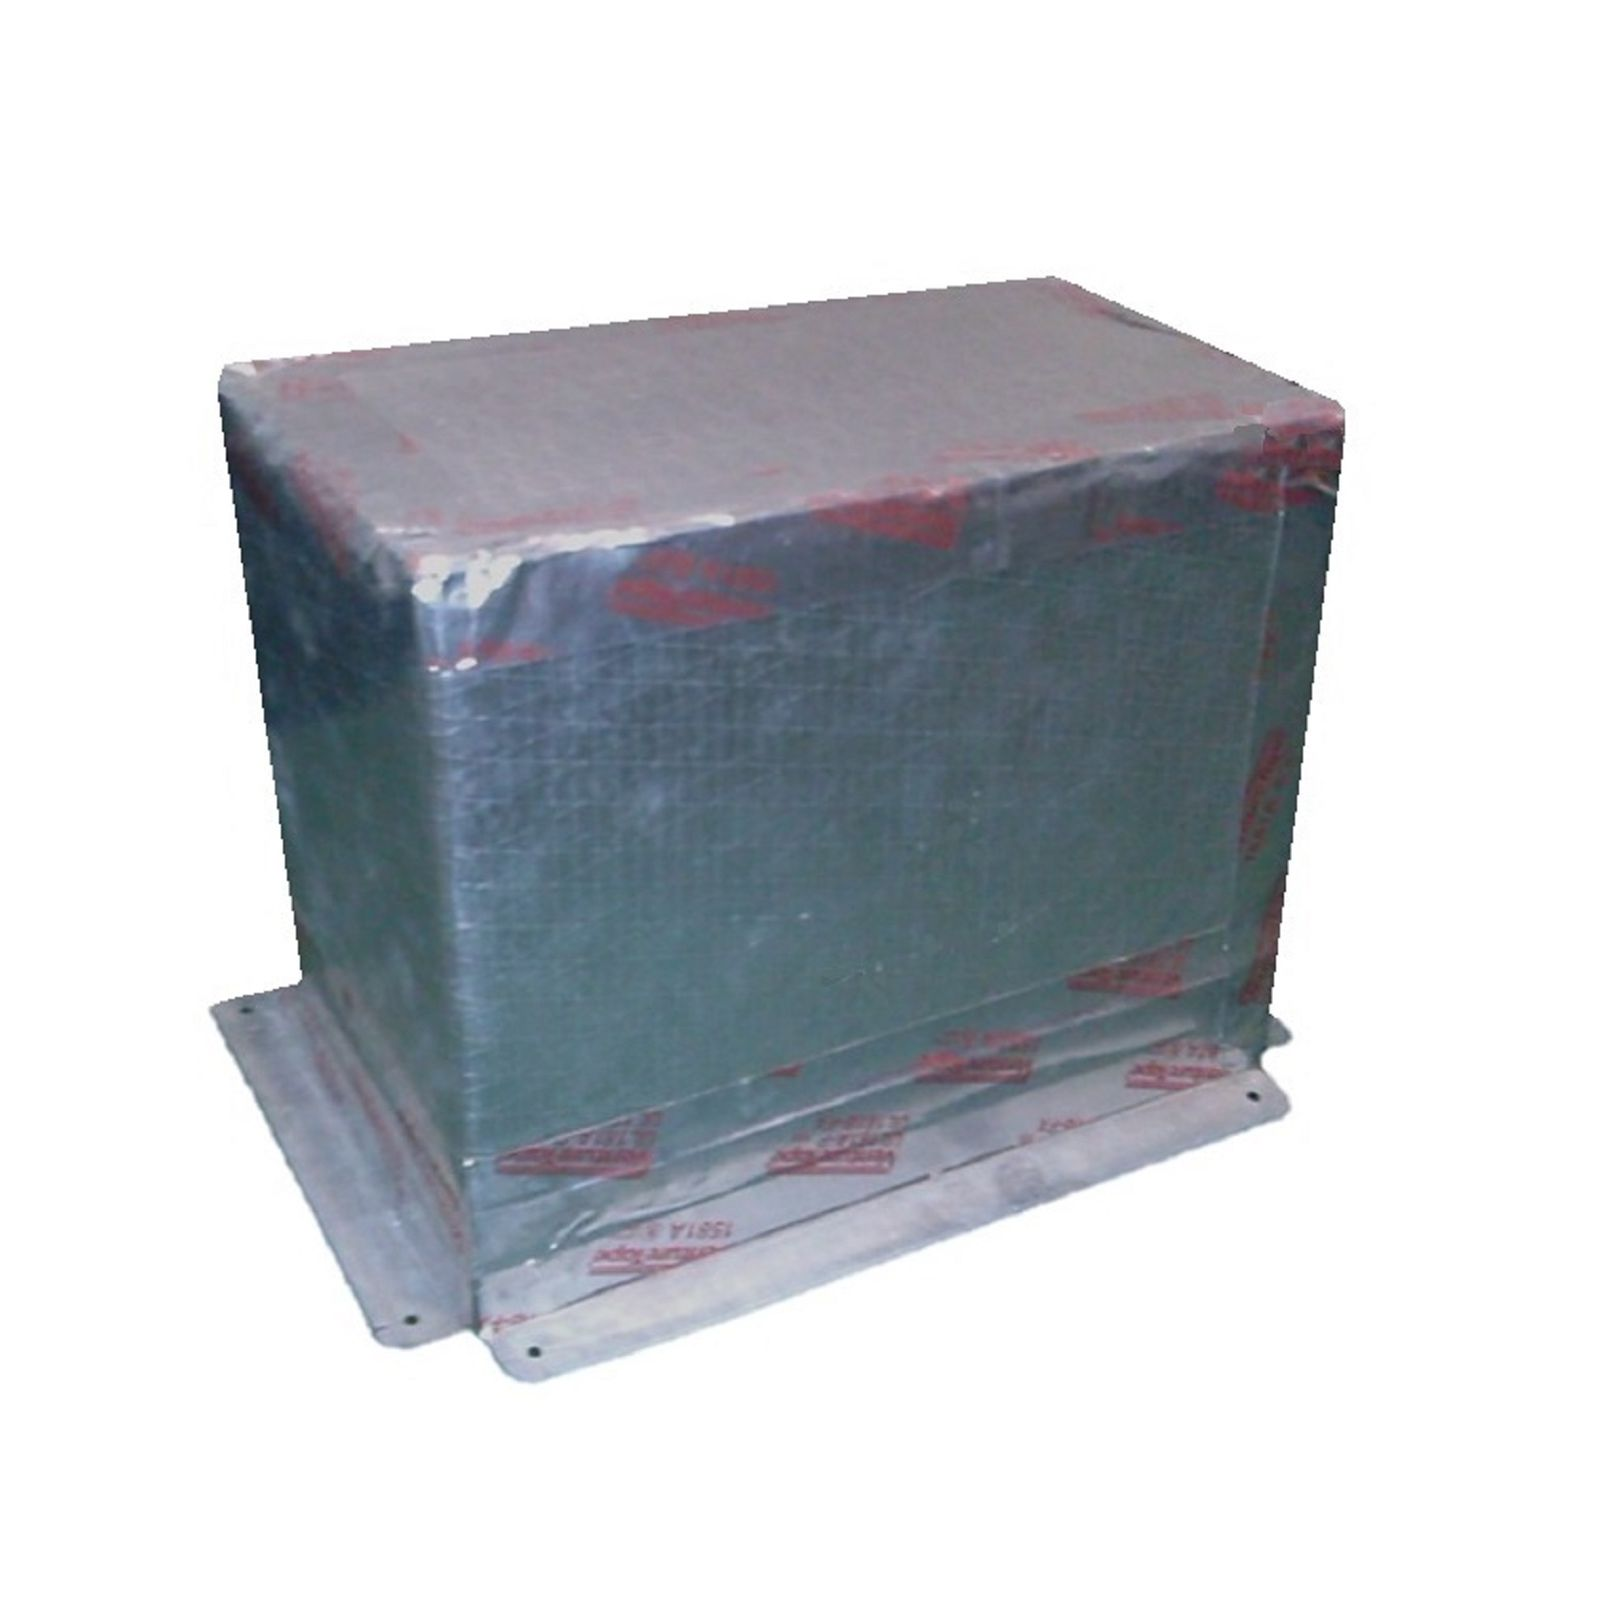 "Snap-Rite 12X06-3900F - Foil Top Register Box With Flange-9"" Deep, 12"" x 06"" - R6"